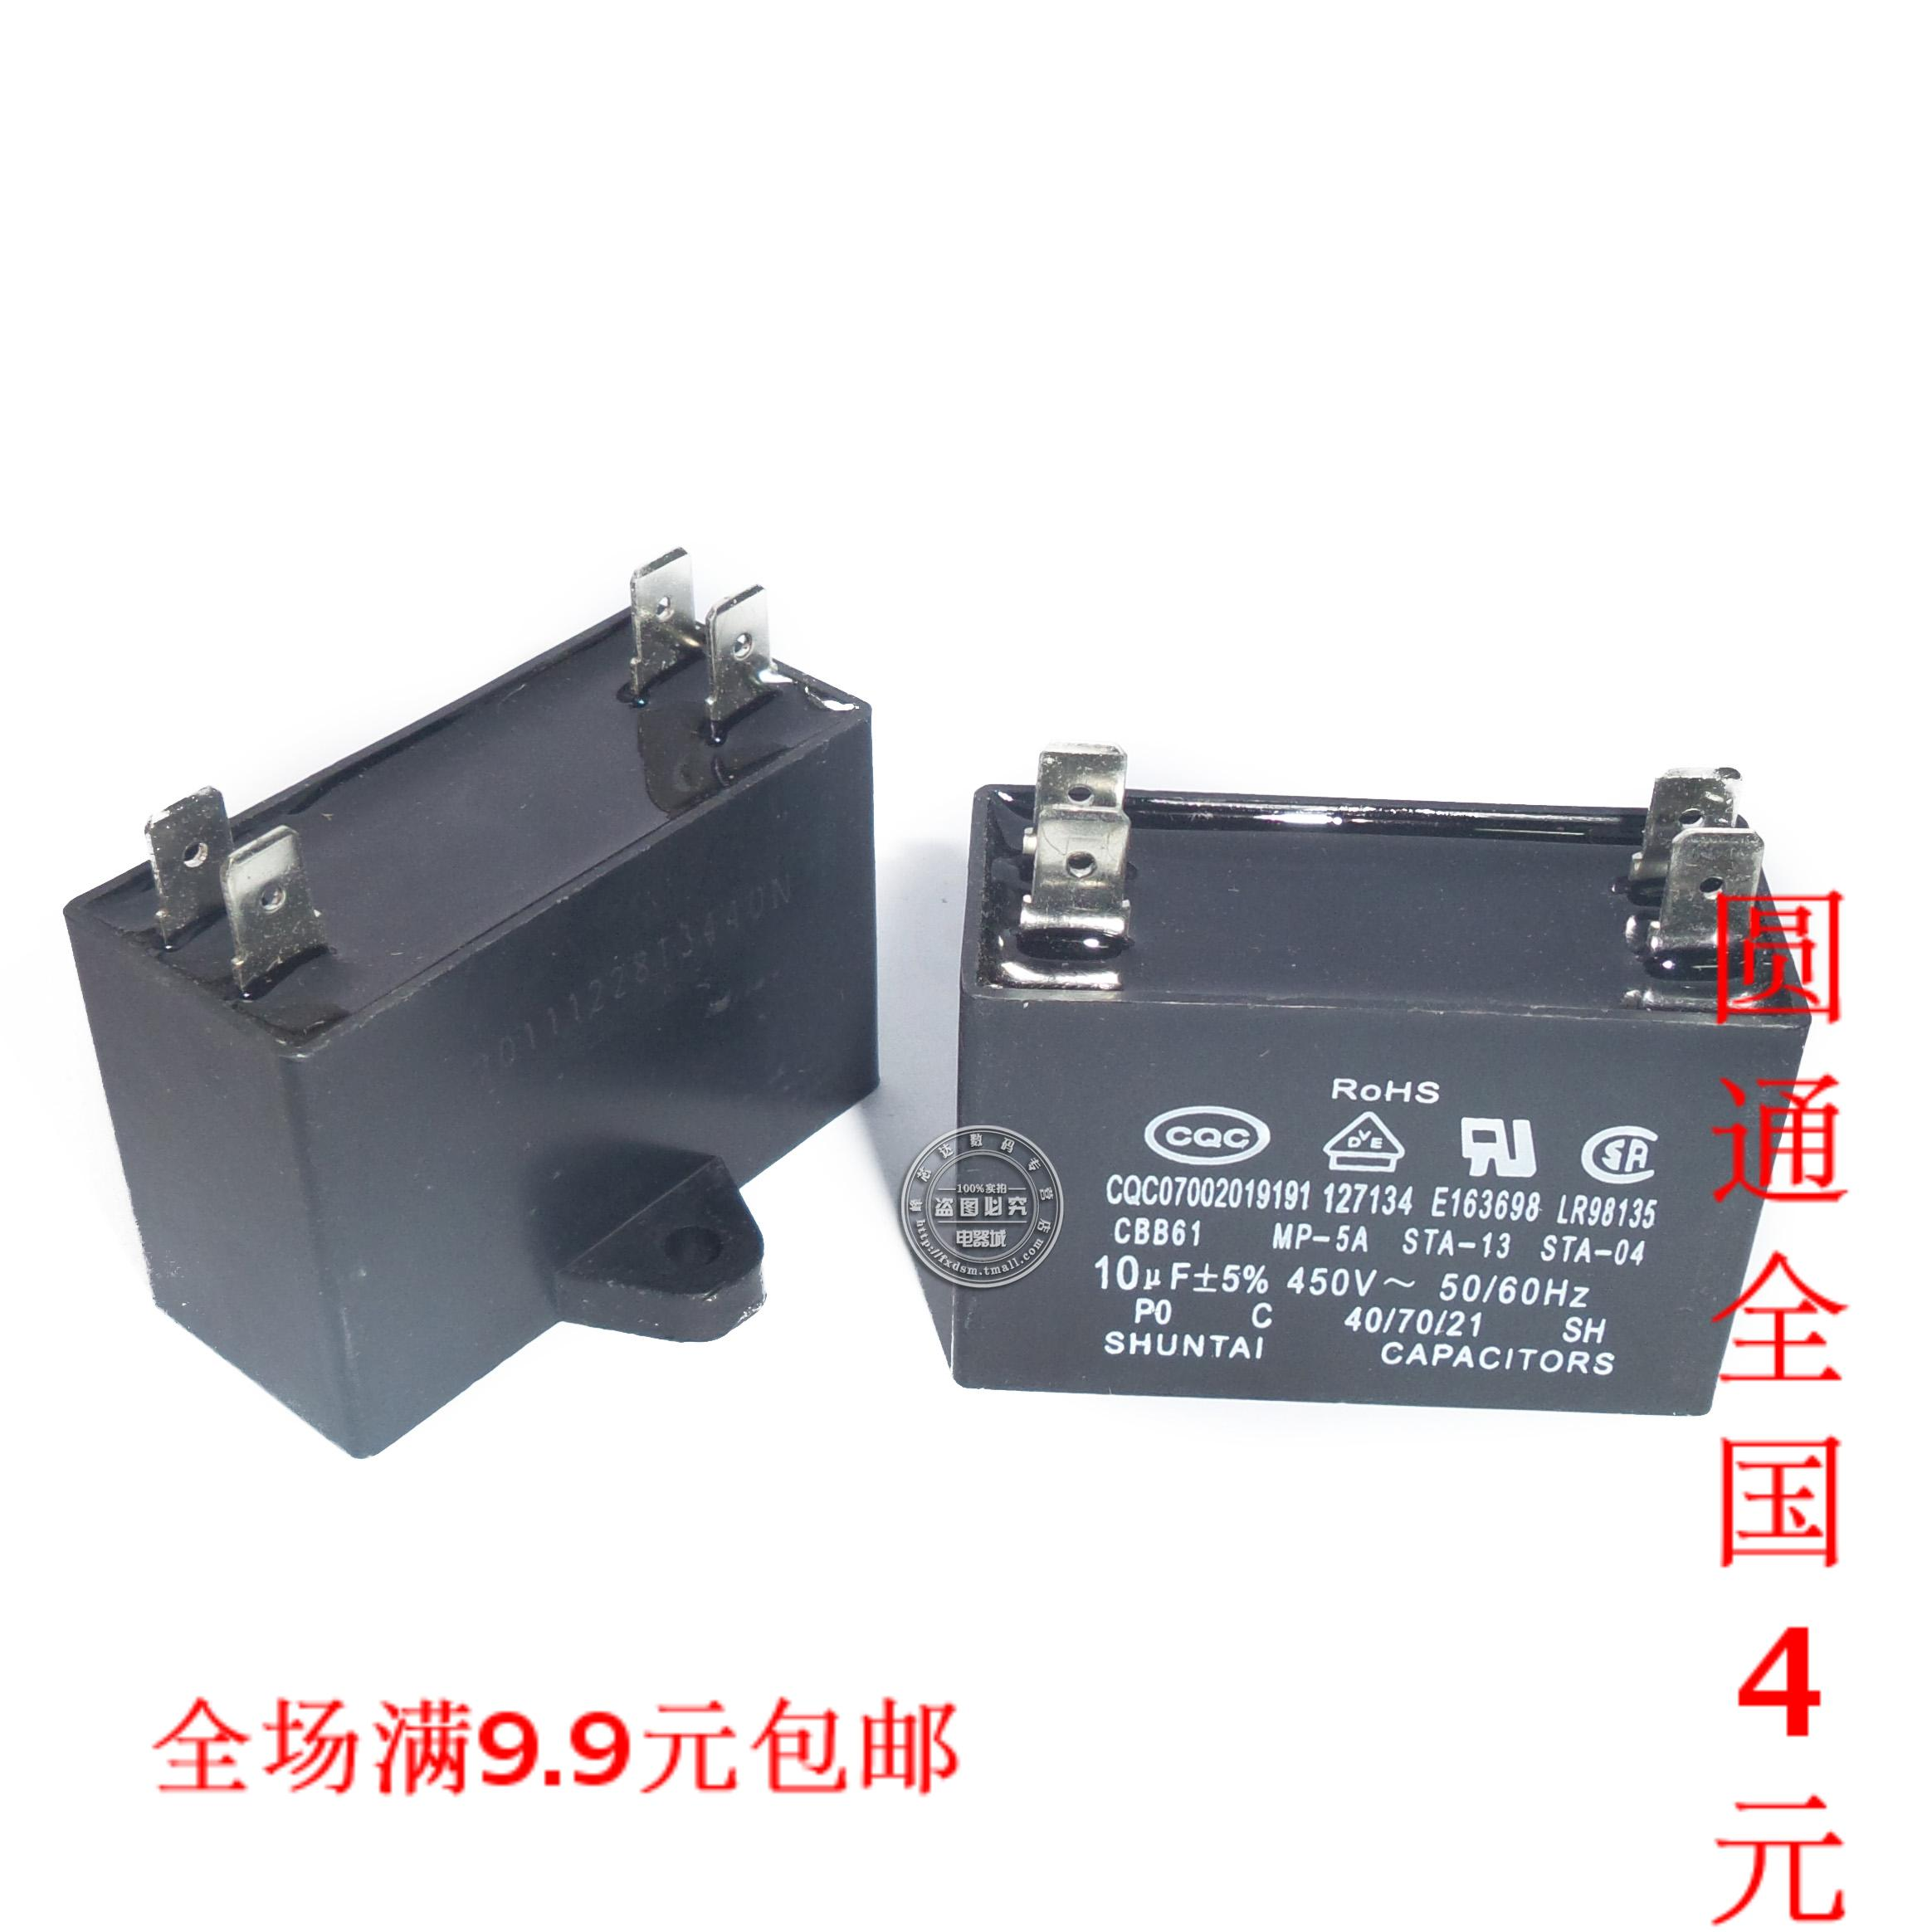 Rui shu broadcast 12 uf conditioning fan capacitor capacitance capacitors 450 v 12 uf start capacitor start capacitor cbb61 fan capacitor